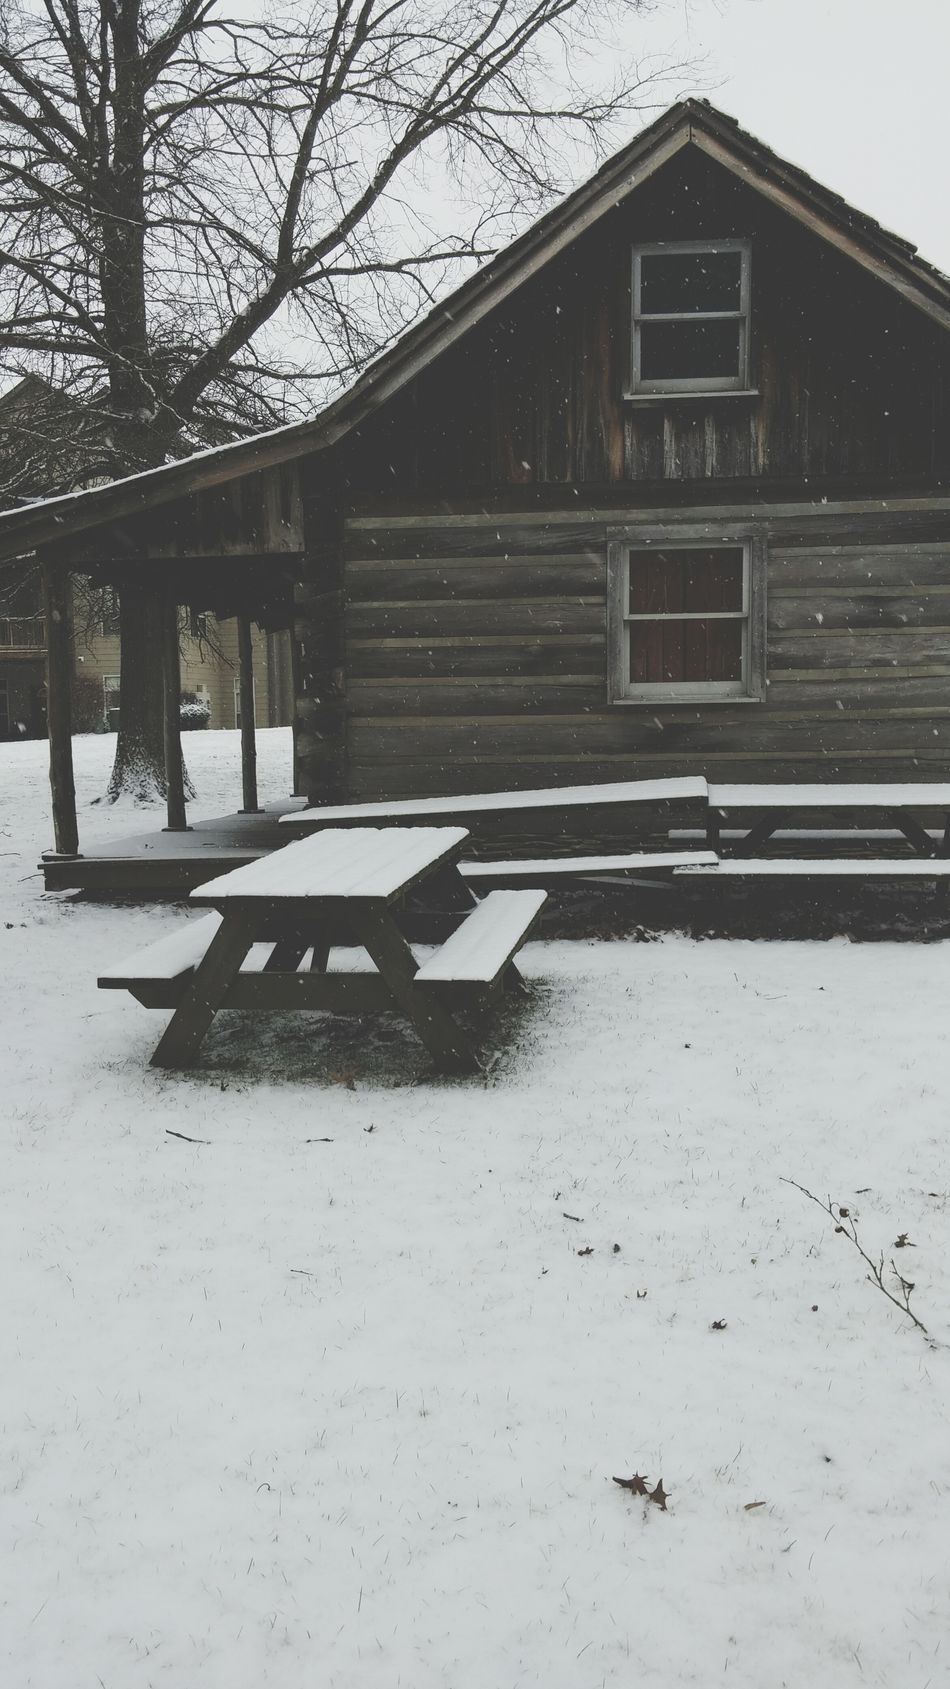 Miles Away Cabin Snow Outdoors Nature Winter Tree Day No People Architecture First Eyeem Photo EyeEmNewHere